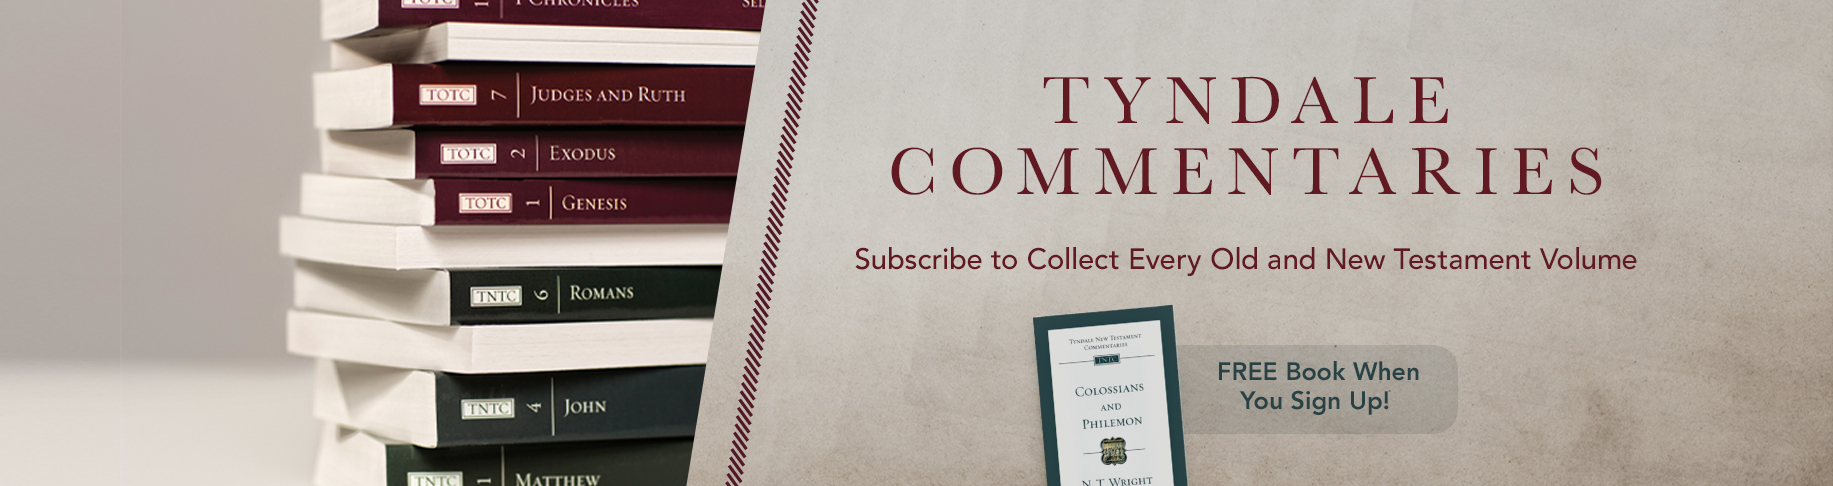 Tyndale Commentary Subscripton